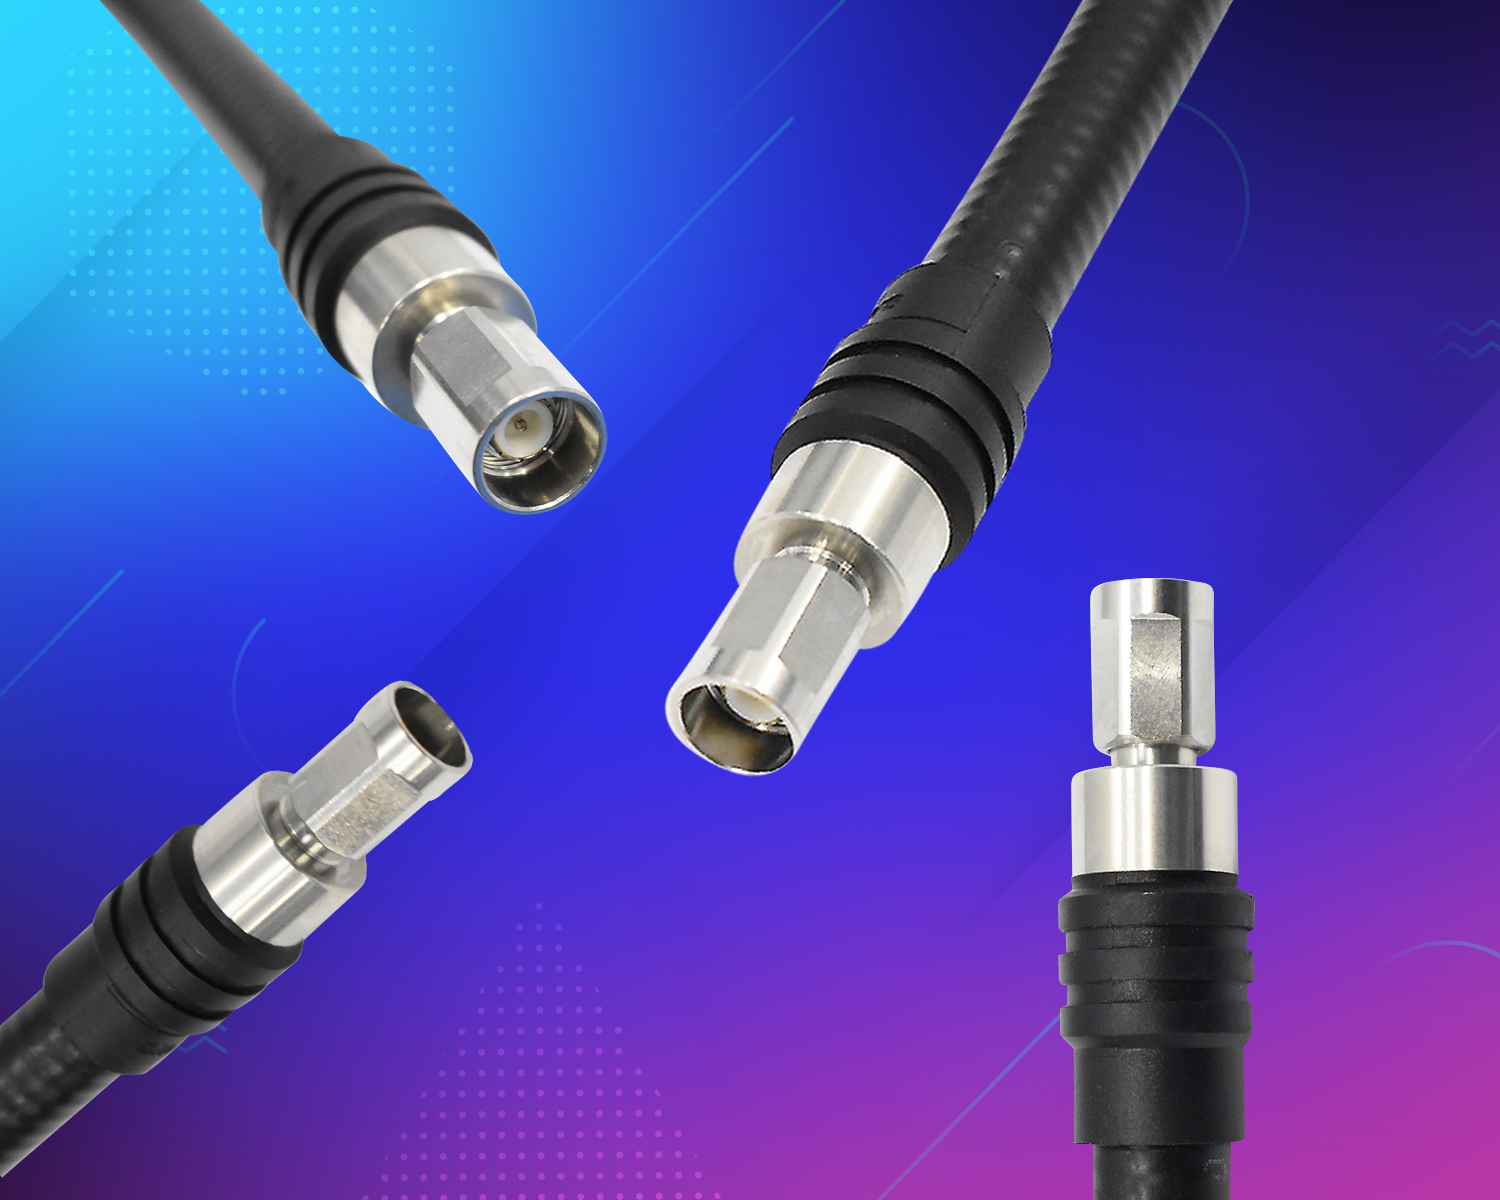 interconnects, interconnect solutions, connectivity, connectivity solutions, cable assemblies, cable harness, custom harness, fiber optic cable assemblies, copper cable assemblies, patch cords, jumper cable assemblies, telecom cable assemblies, wireless cable assemblies, rugged cable assemblies, box builds, panel builds, box assemblies, panel assemblies, coax assemblies, coaxial cable assemblies, coaxial jumpers, coax jumpers, cell tower assemblies